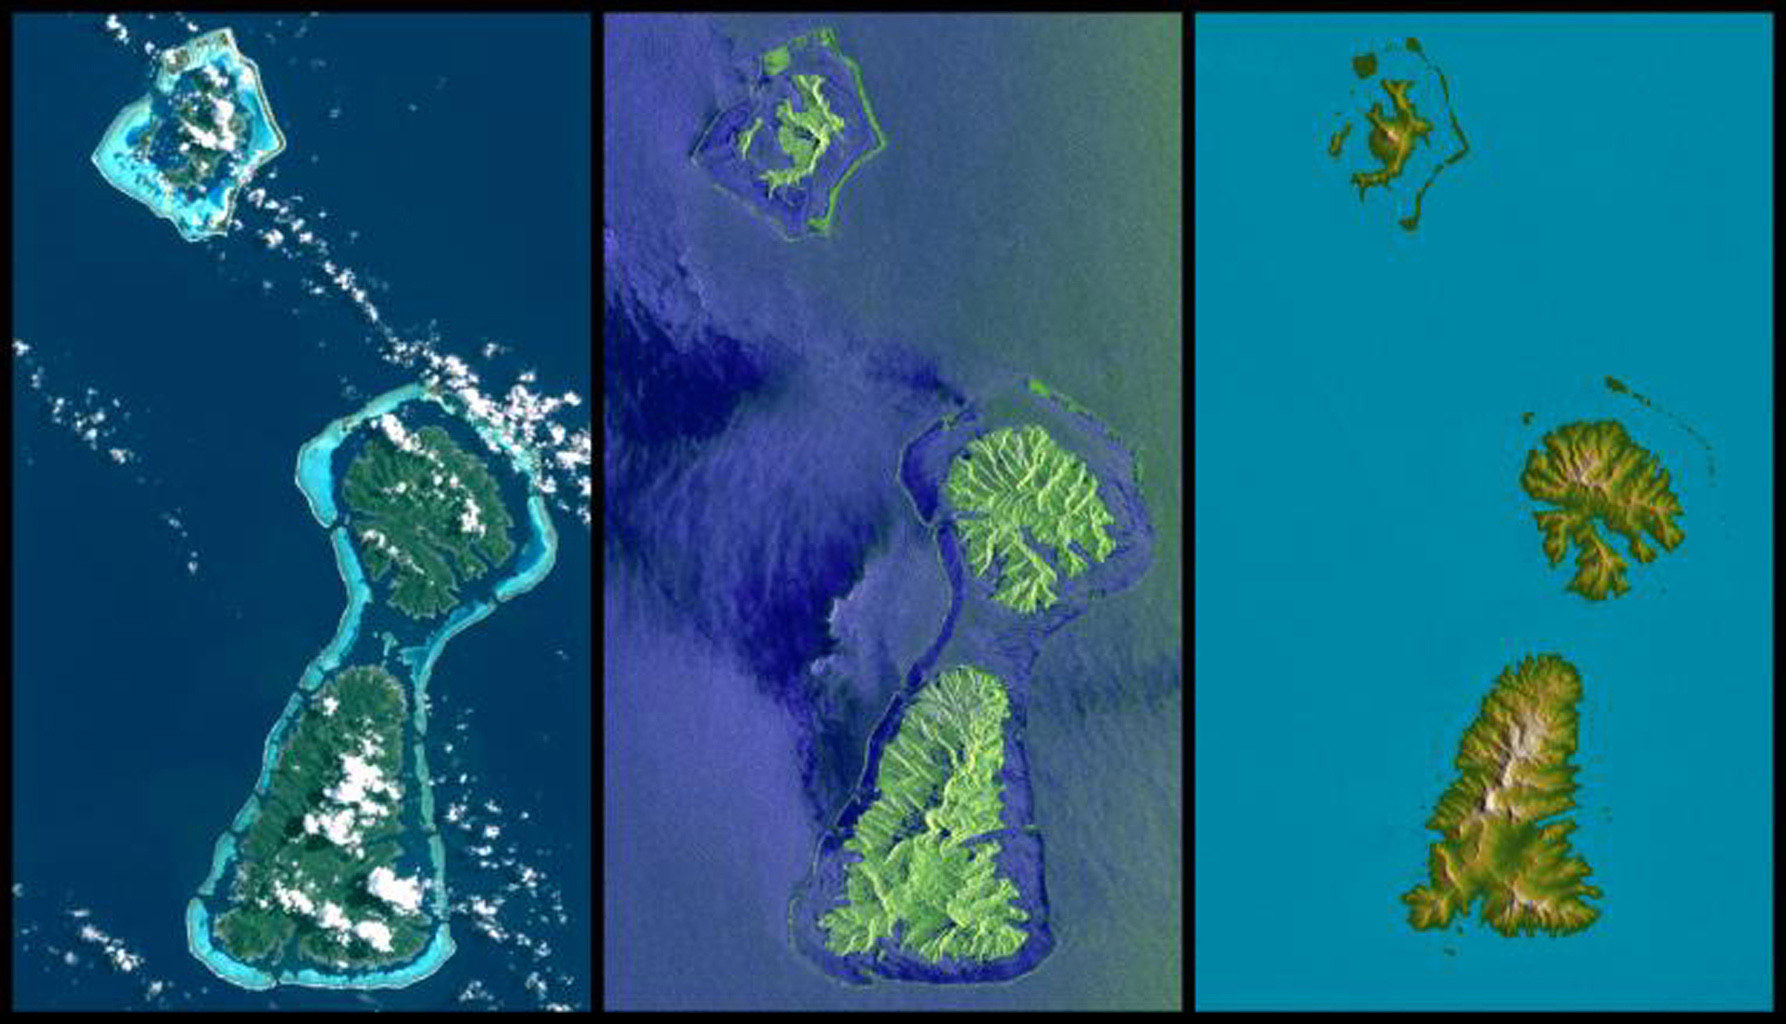 Bora Bora, Tahaa, and Raiatea (top to bottom) are Polynesian Islands about 220 kilometers (135 miles) west-northwest of Tahiti in the South Pacific. This image from NASA's Shuttle Radar Topography Mission.